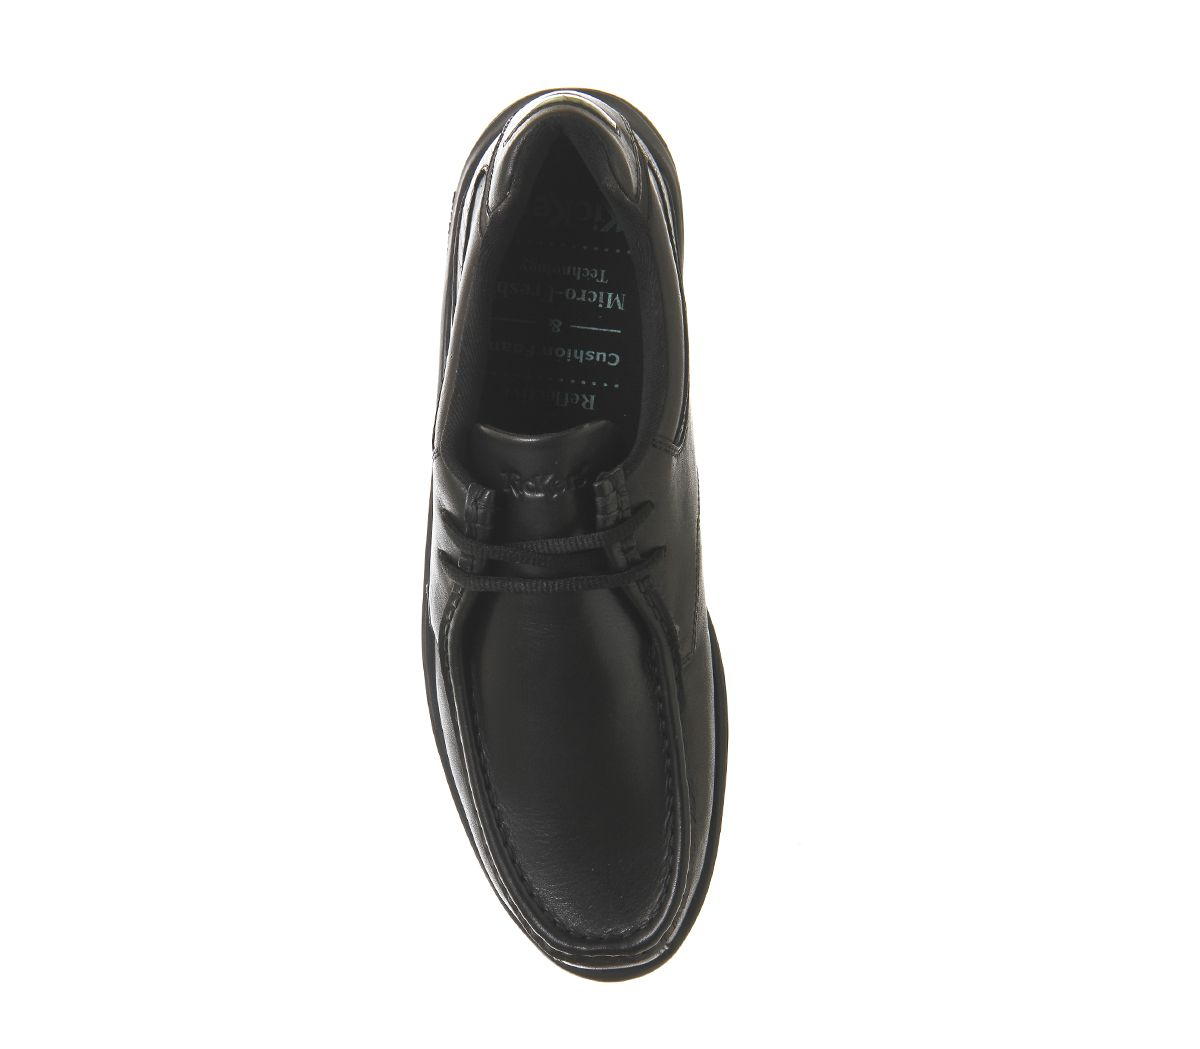 e160aa5d03 Mens Kickers Reason Lace Shoes Black Leather Formal Shoes | eBay